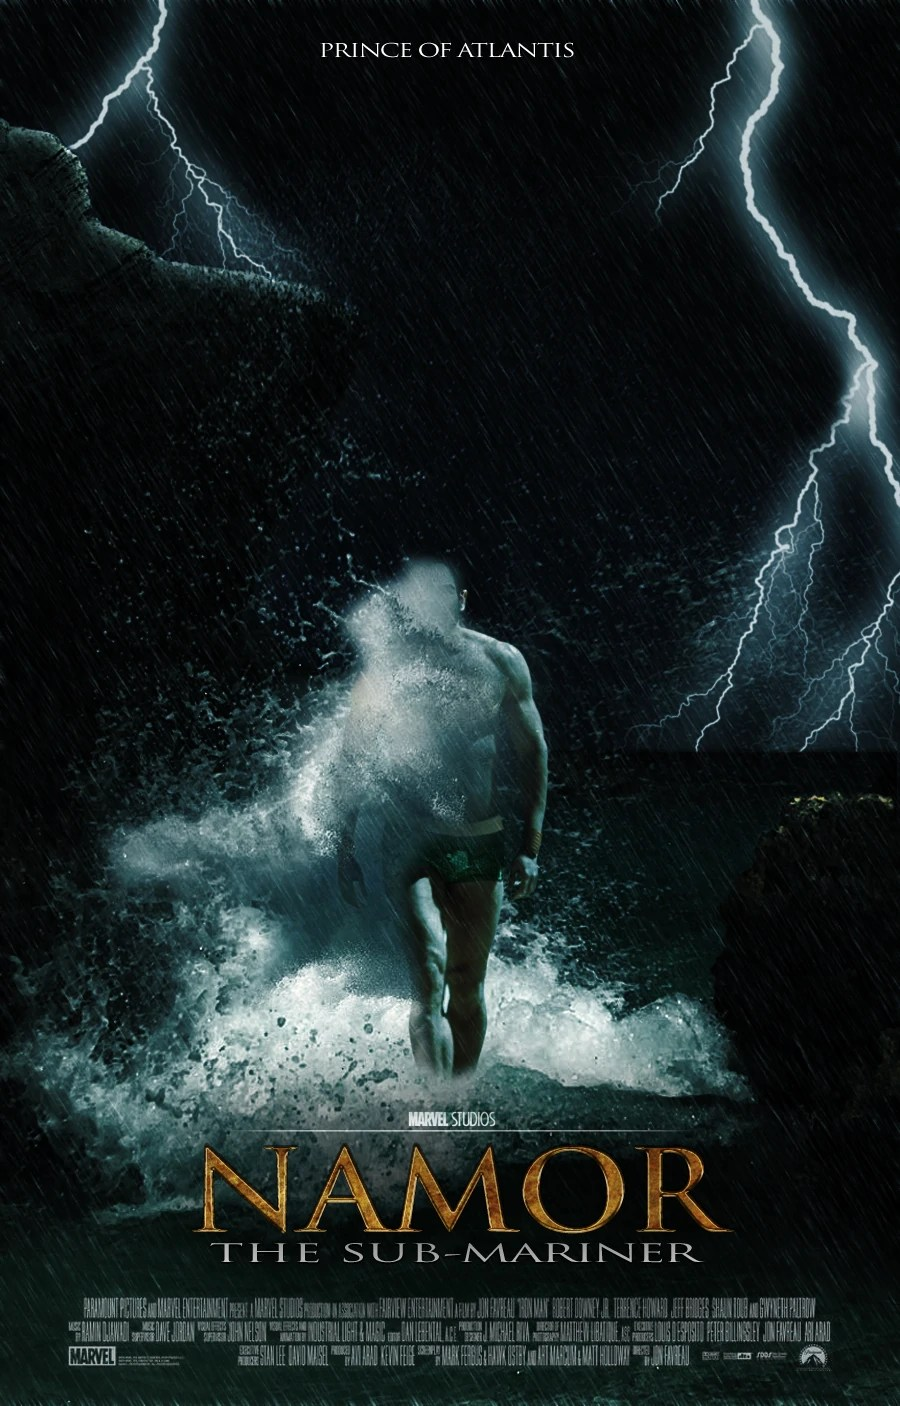 Wallpaper Of Water Fall Namor Marvel Movies Fanon Wiki